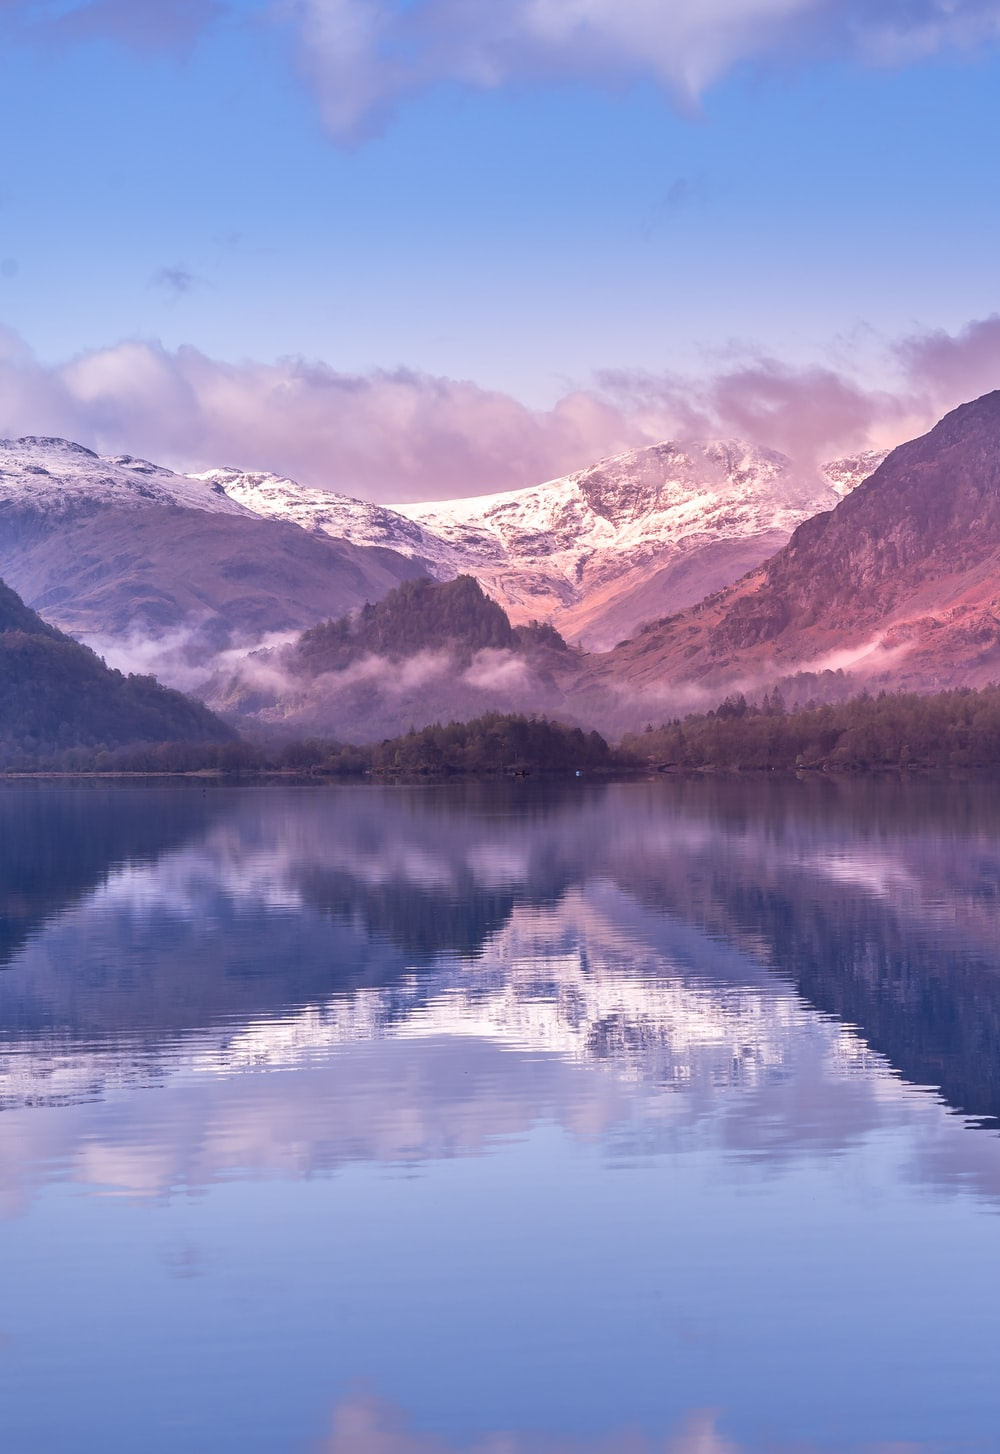 lake near snow covered mountains during daytime